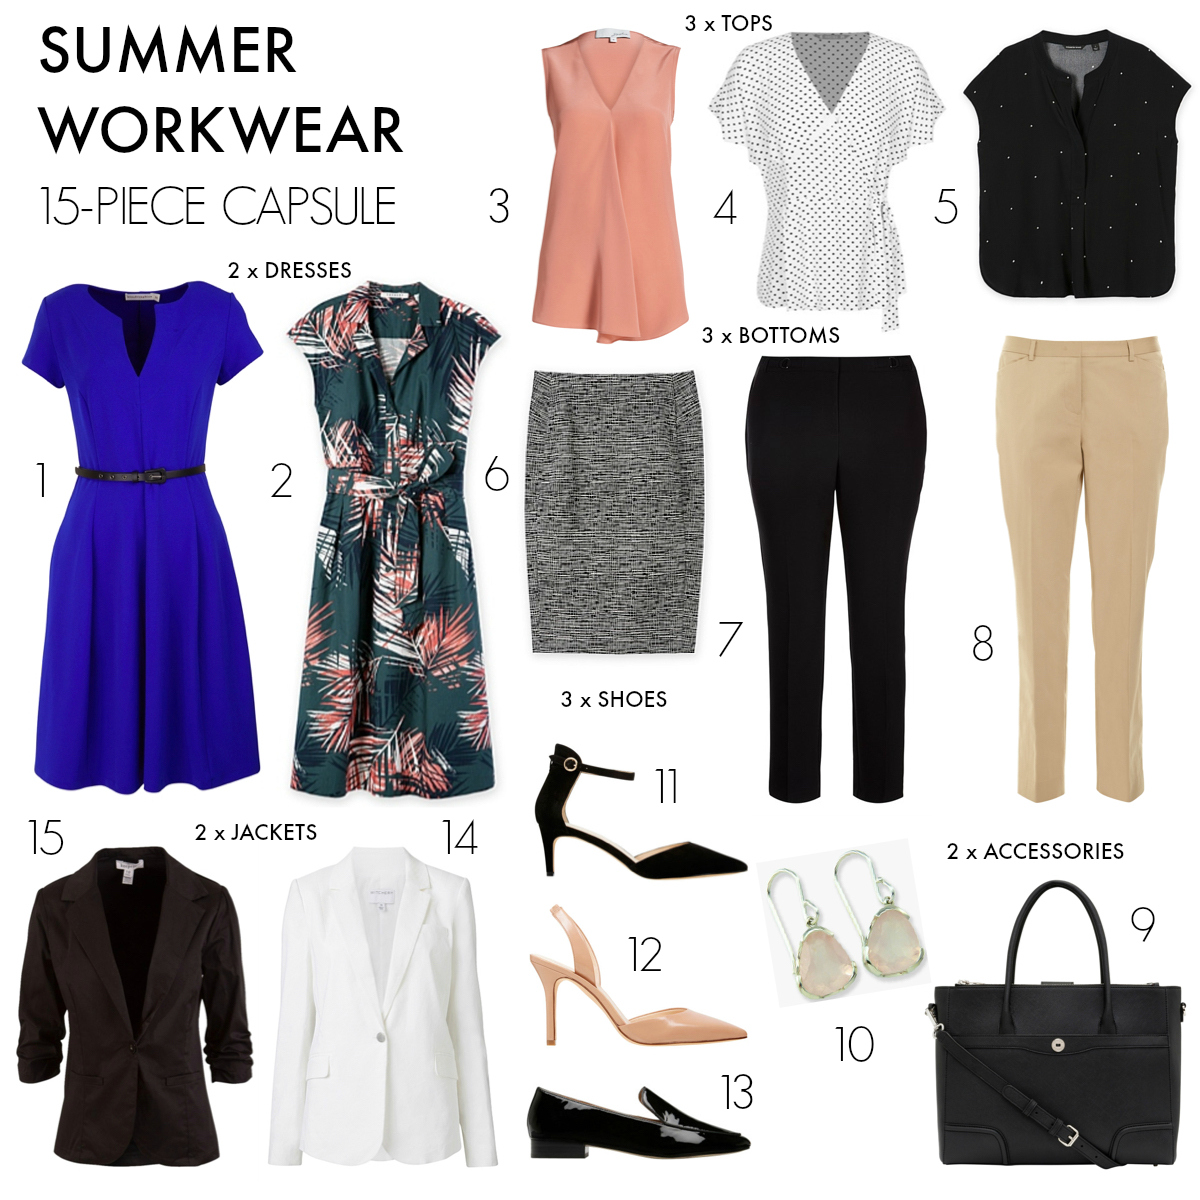 15-piece summer workwear capsule wardrobe